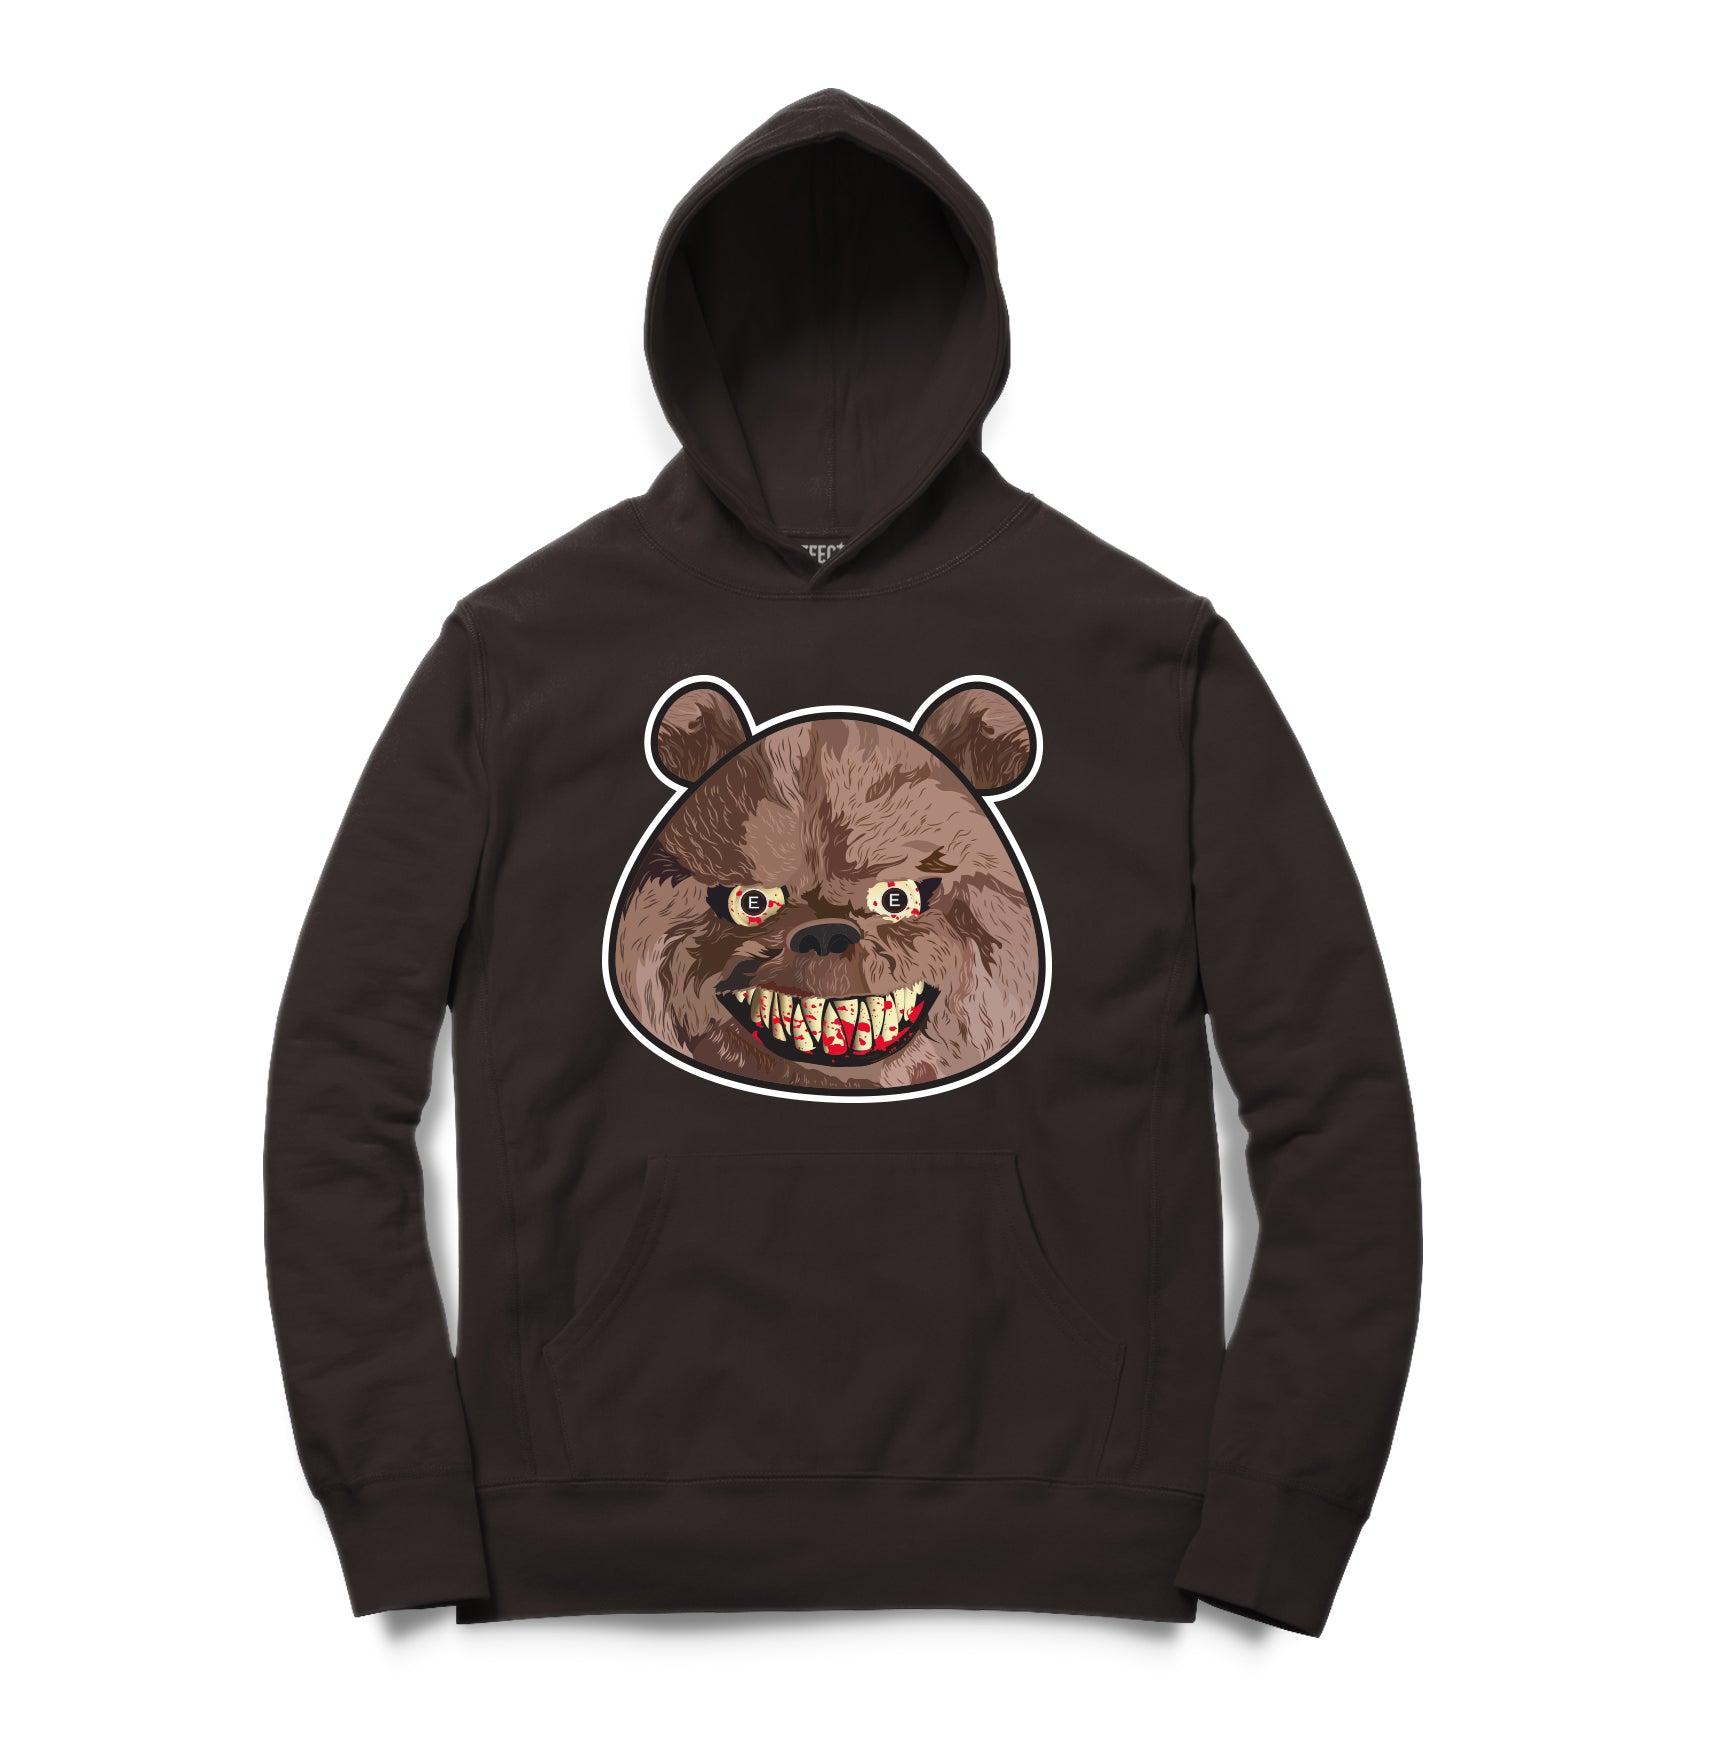 Scary Bear Hoodie-Chocolate